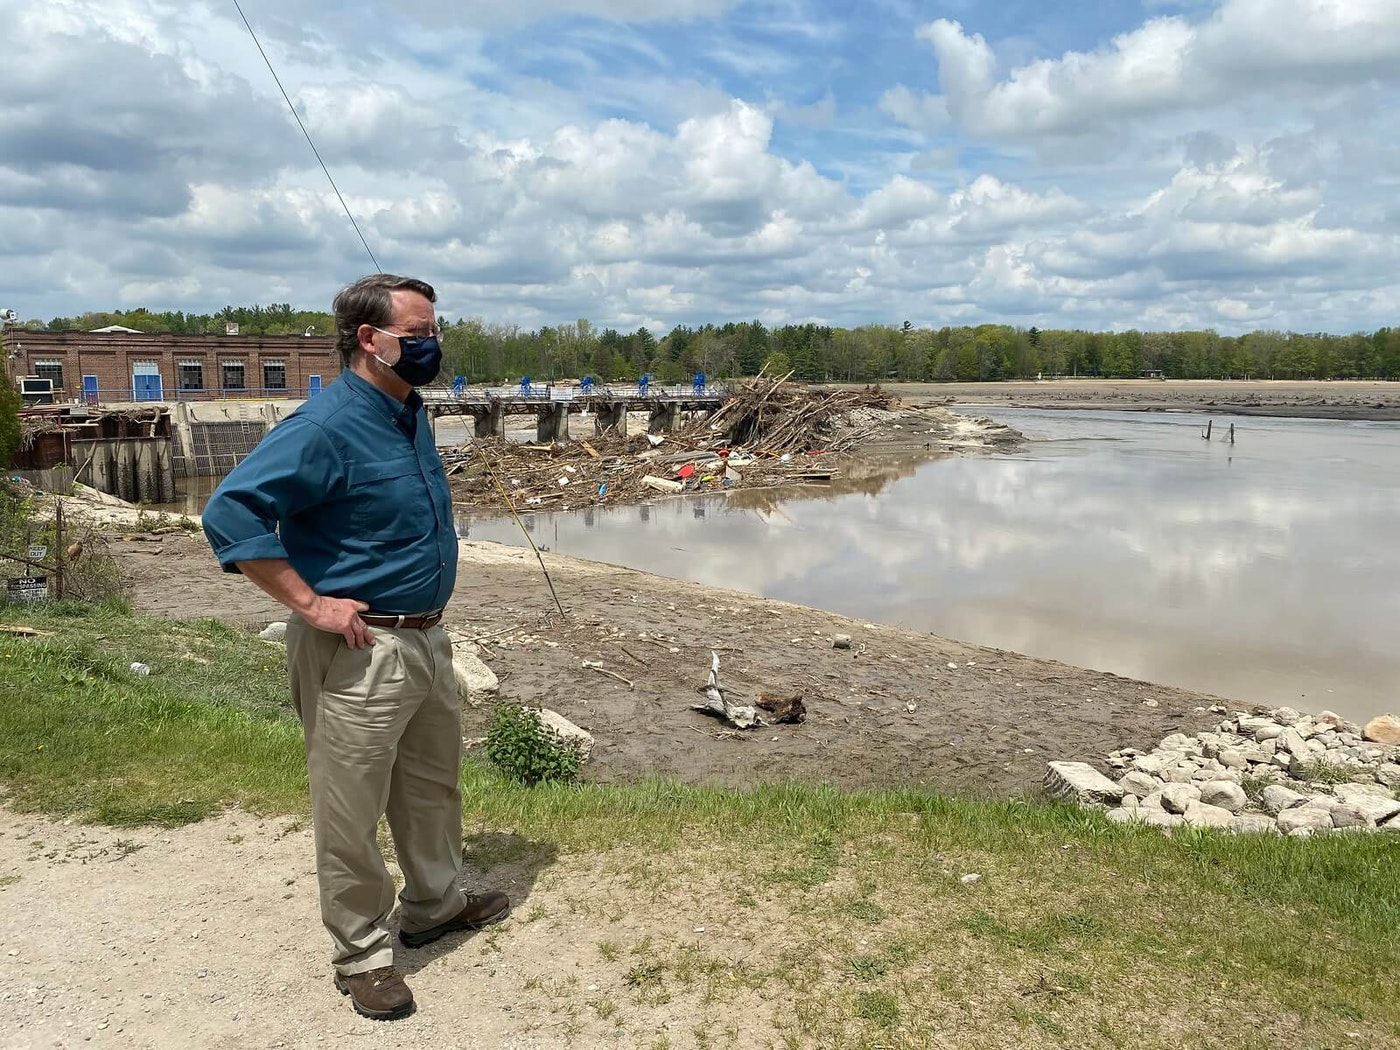 Sen. Peters surveying flood damage. Photo courtesy Sen. Peters' office.